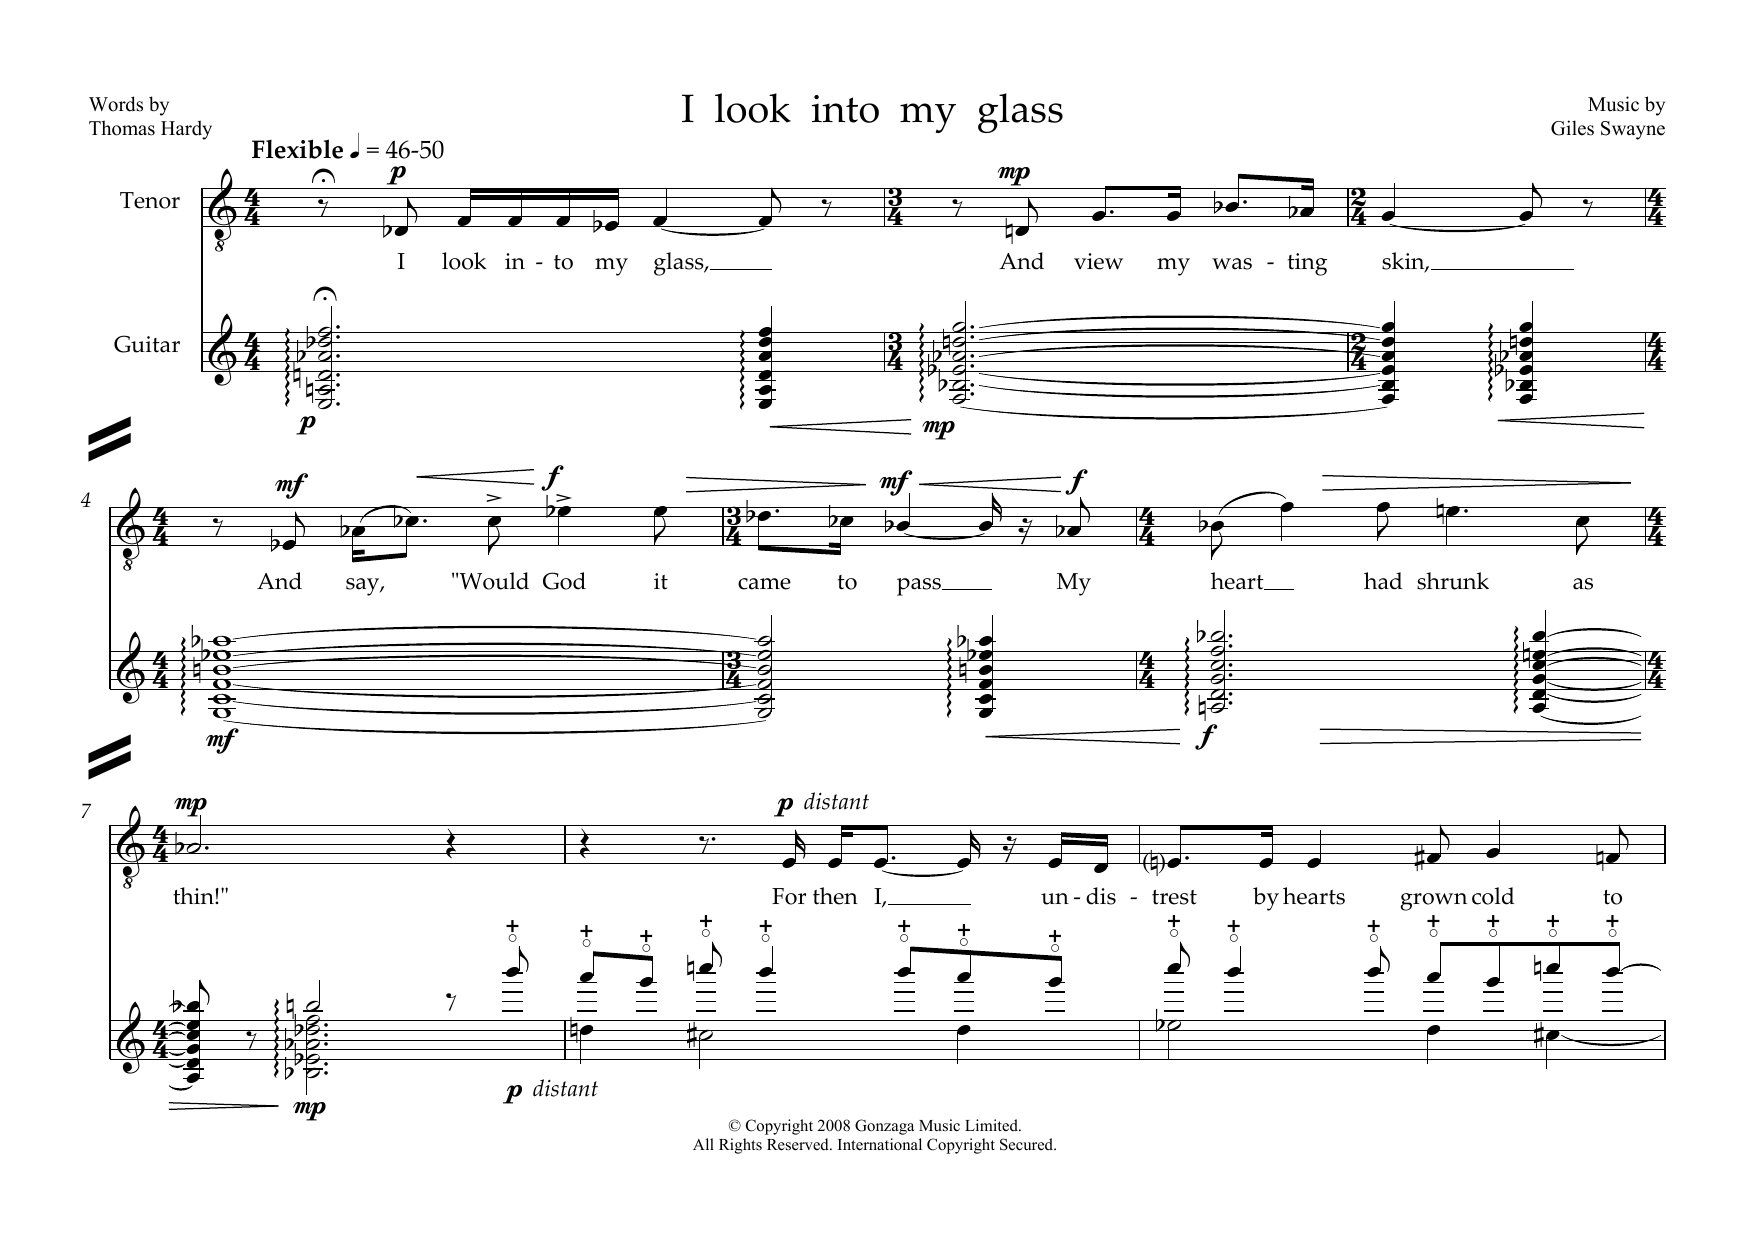 Giles Swayne - I look into my glass (for tenor and guitar)